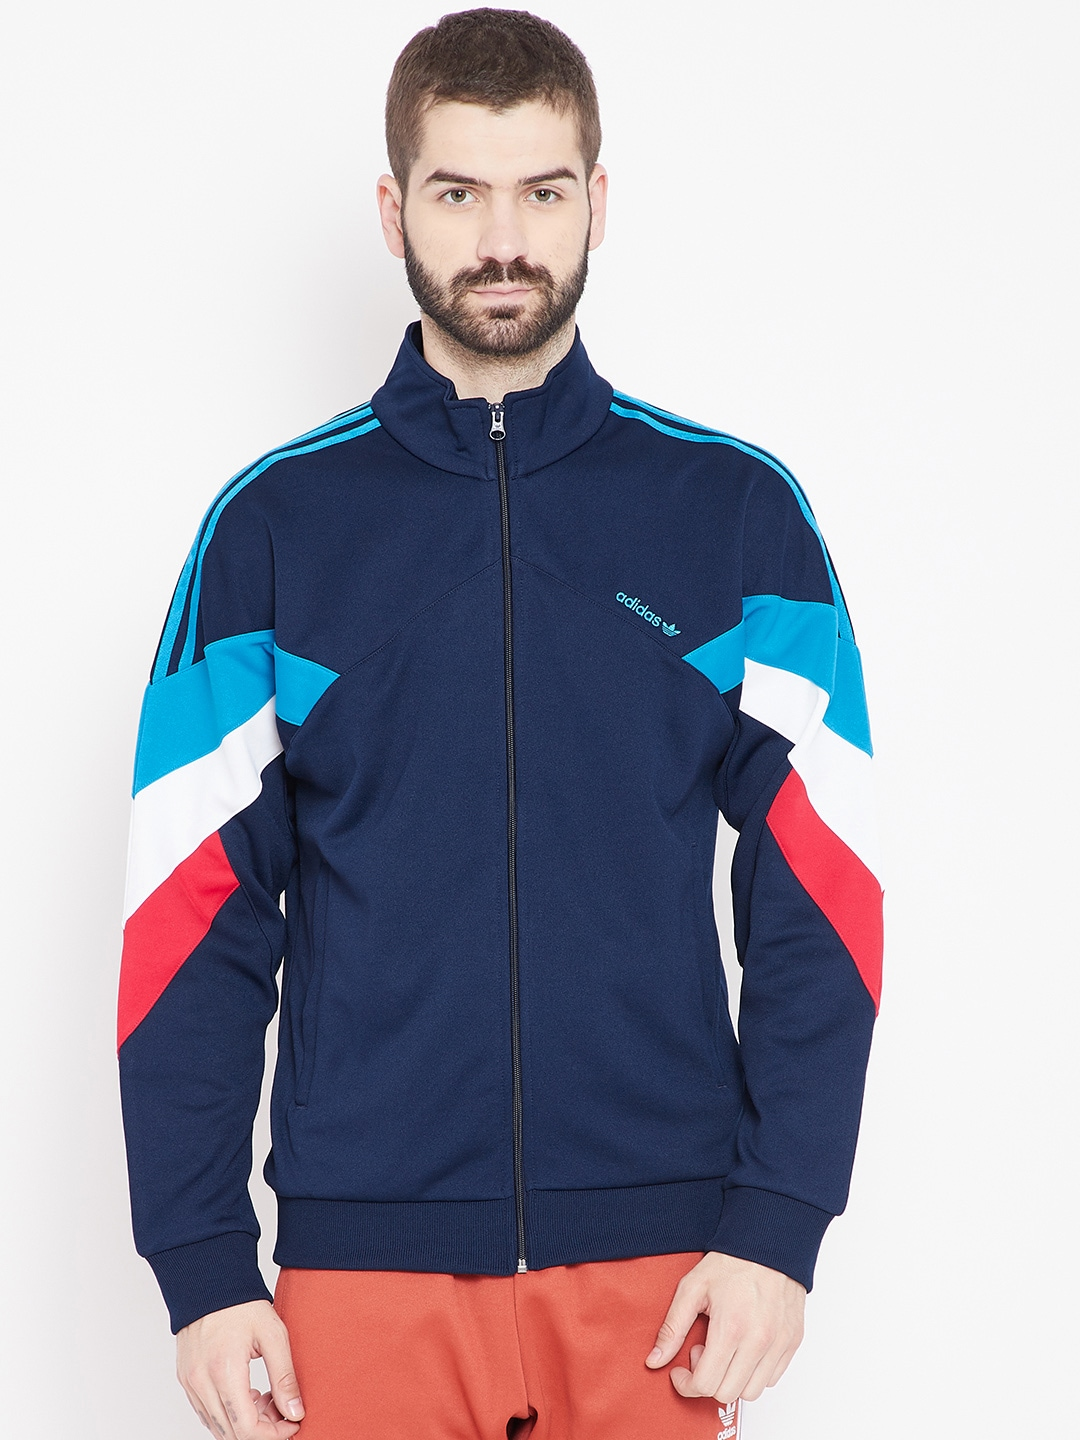 fcb7a40b146df Jackets for Men - Shop for Mens Jacket Online in India